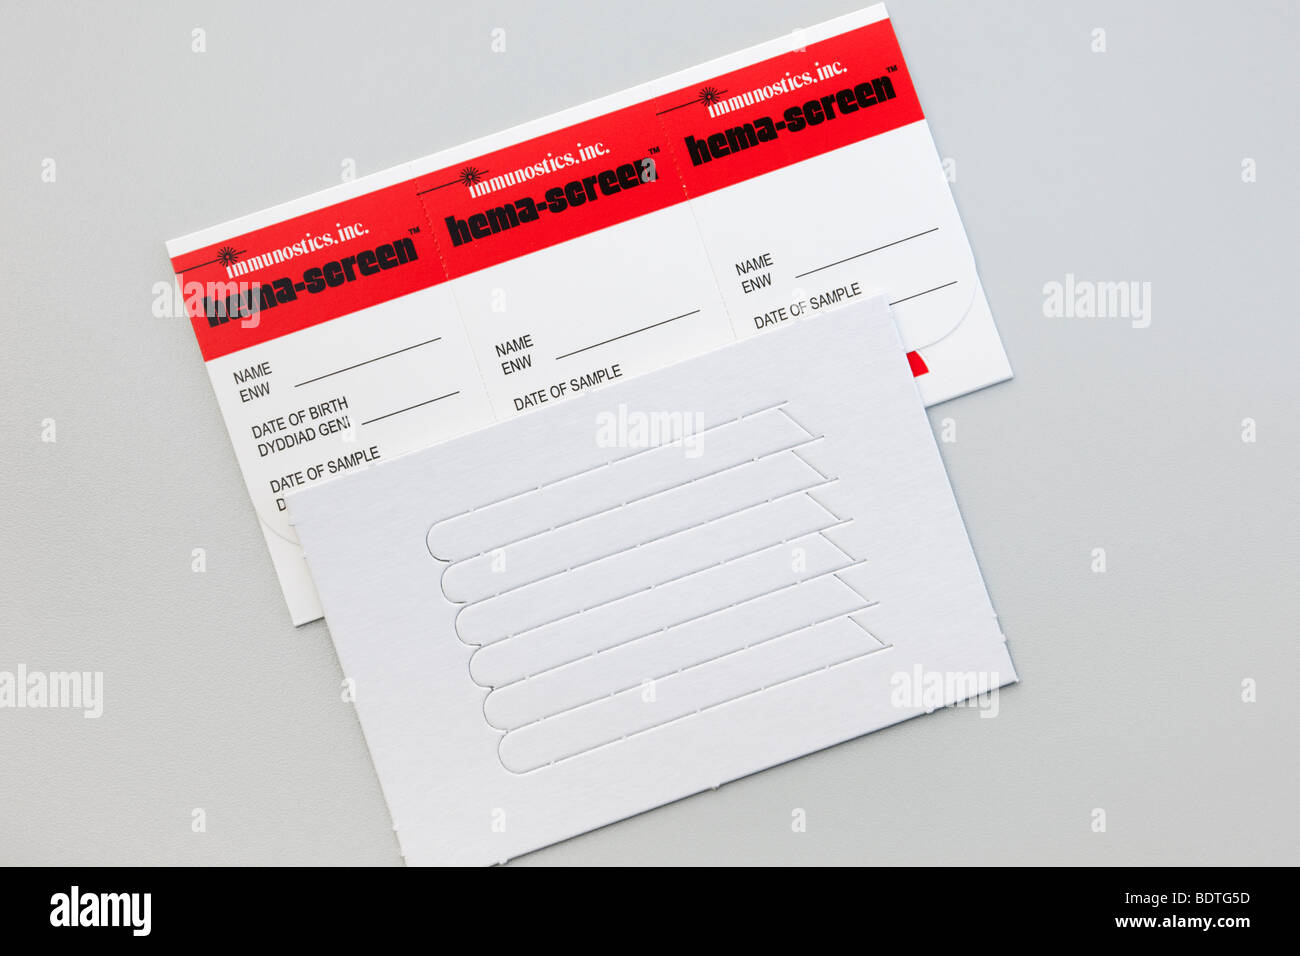 Studio still life UK. Bowel cancer screening kit from National Health Service Wales. - Stock Image